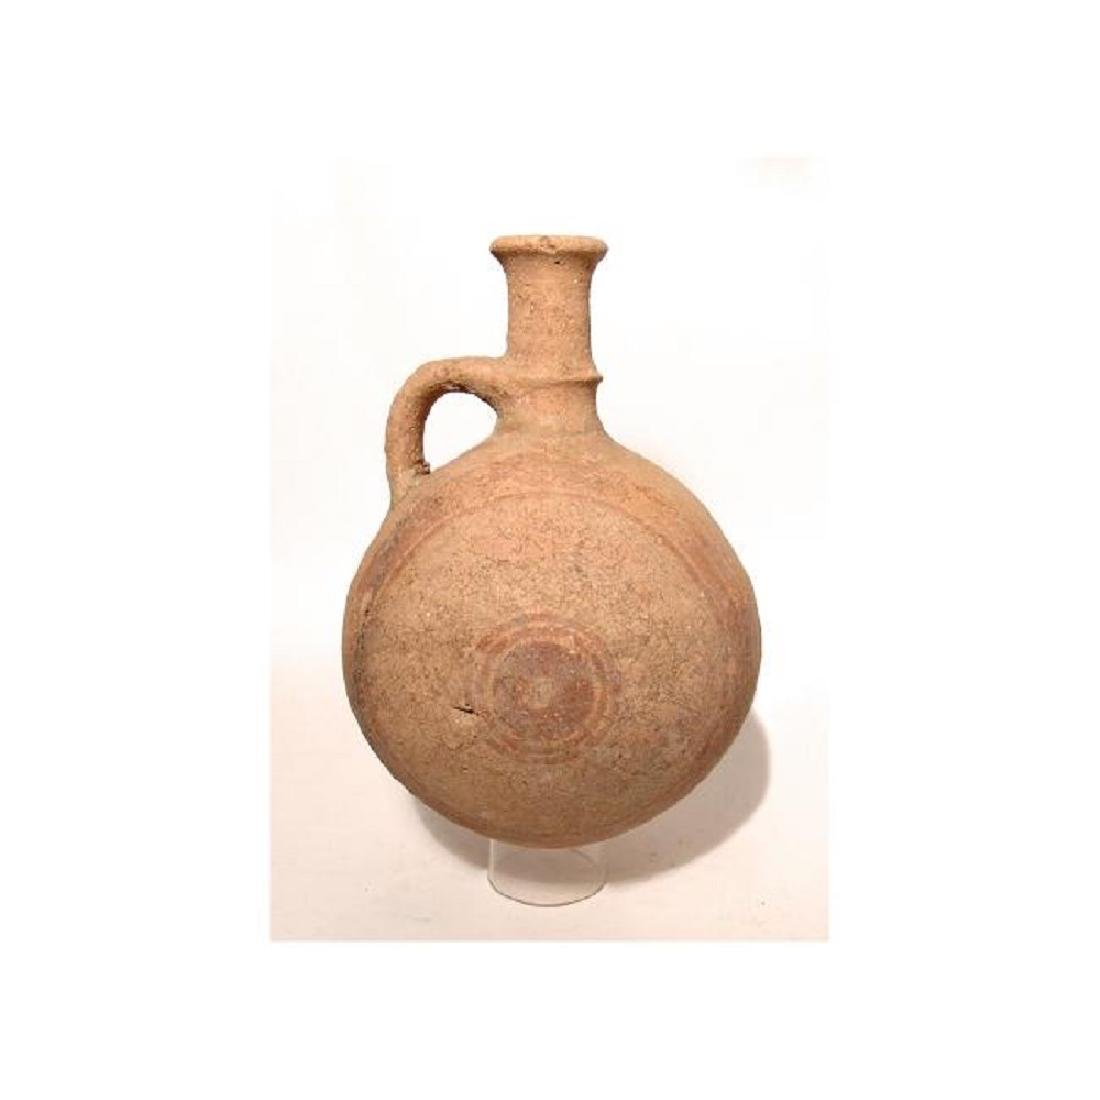 A large Cypriot round-bodied jug